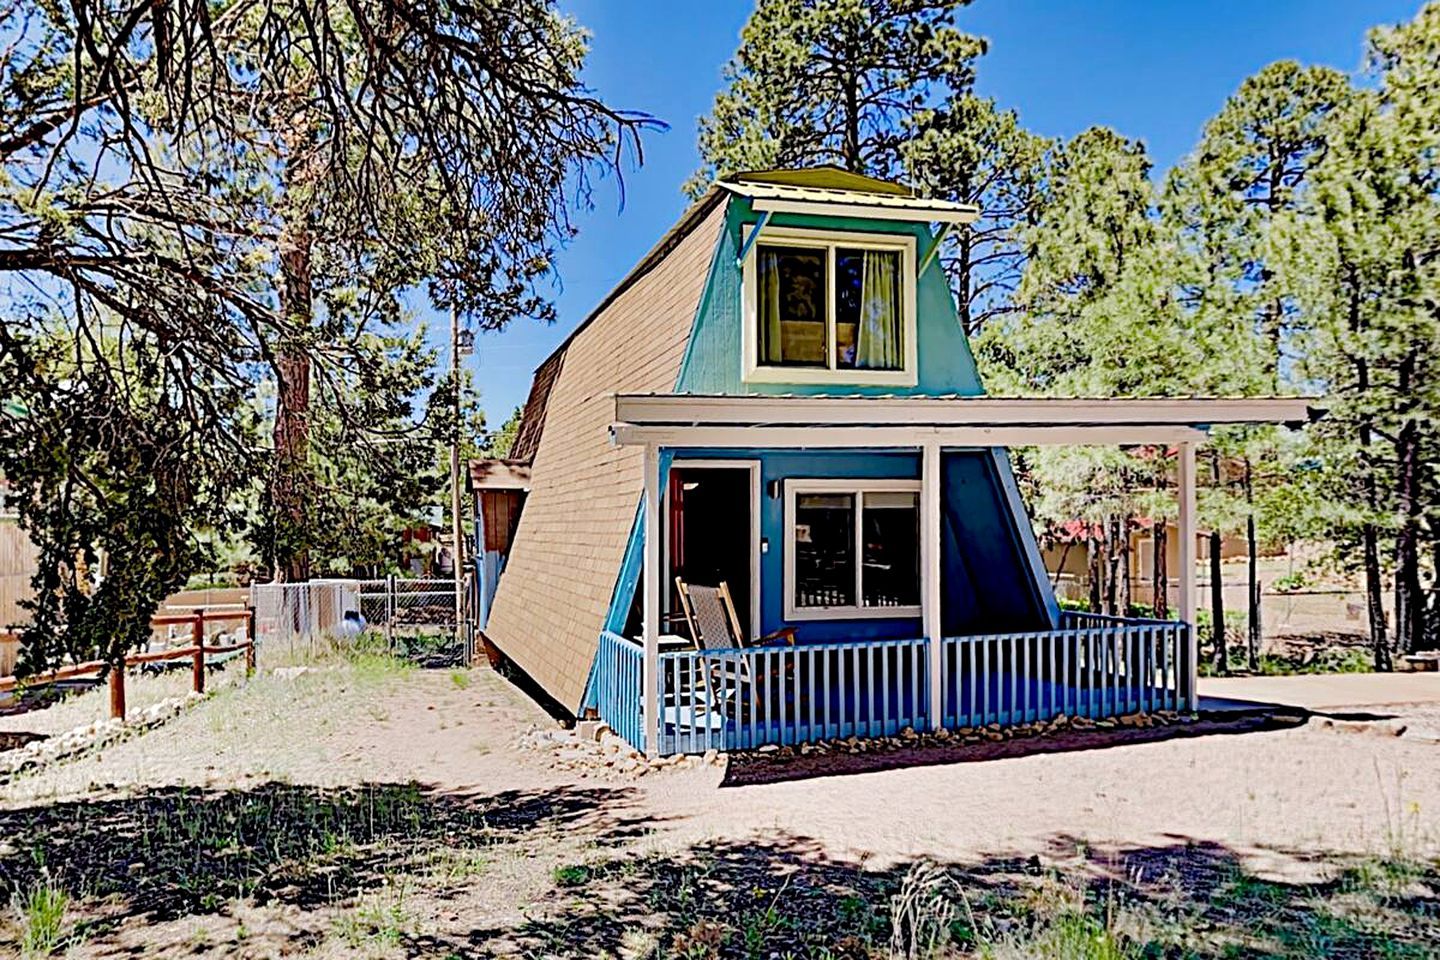 This immaculate Arizona cabin rental is ideal for a nature retreat.